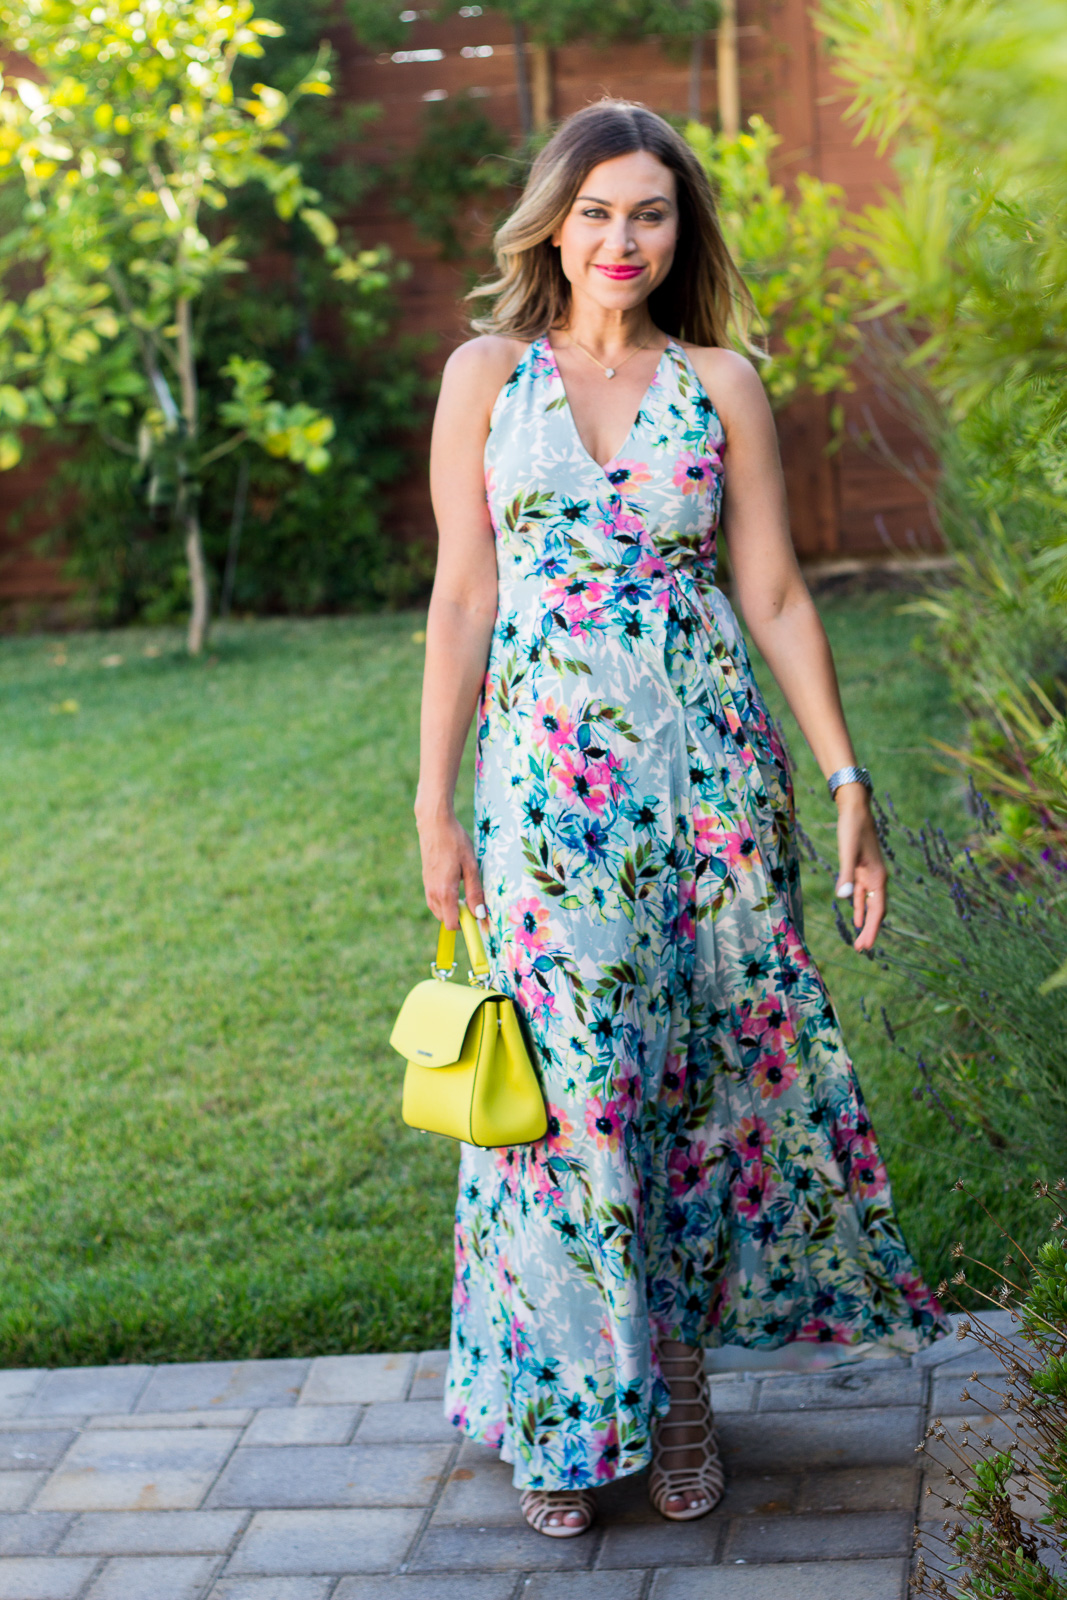 yumi kim rush hour floral print maxi dress